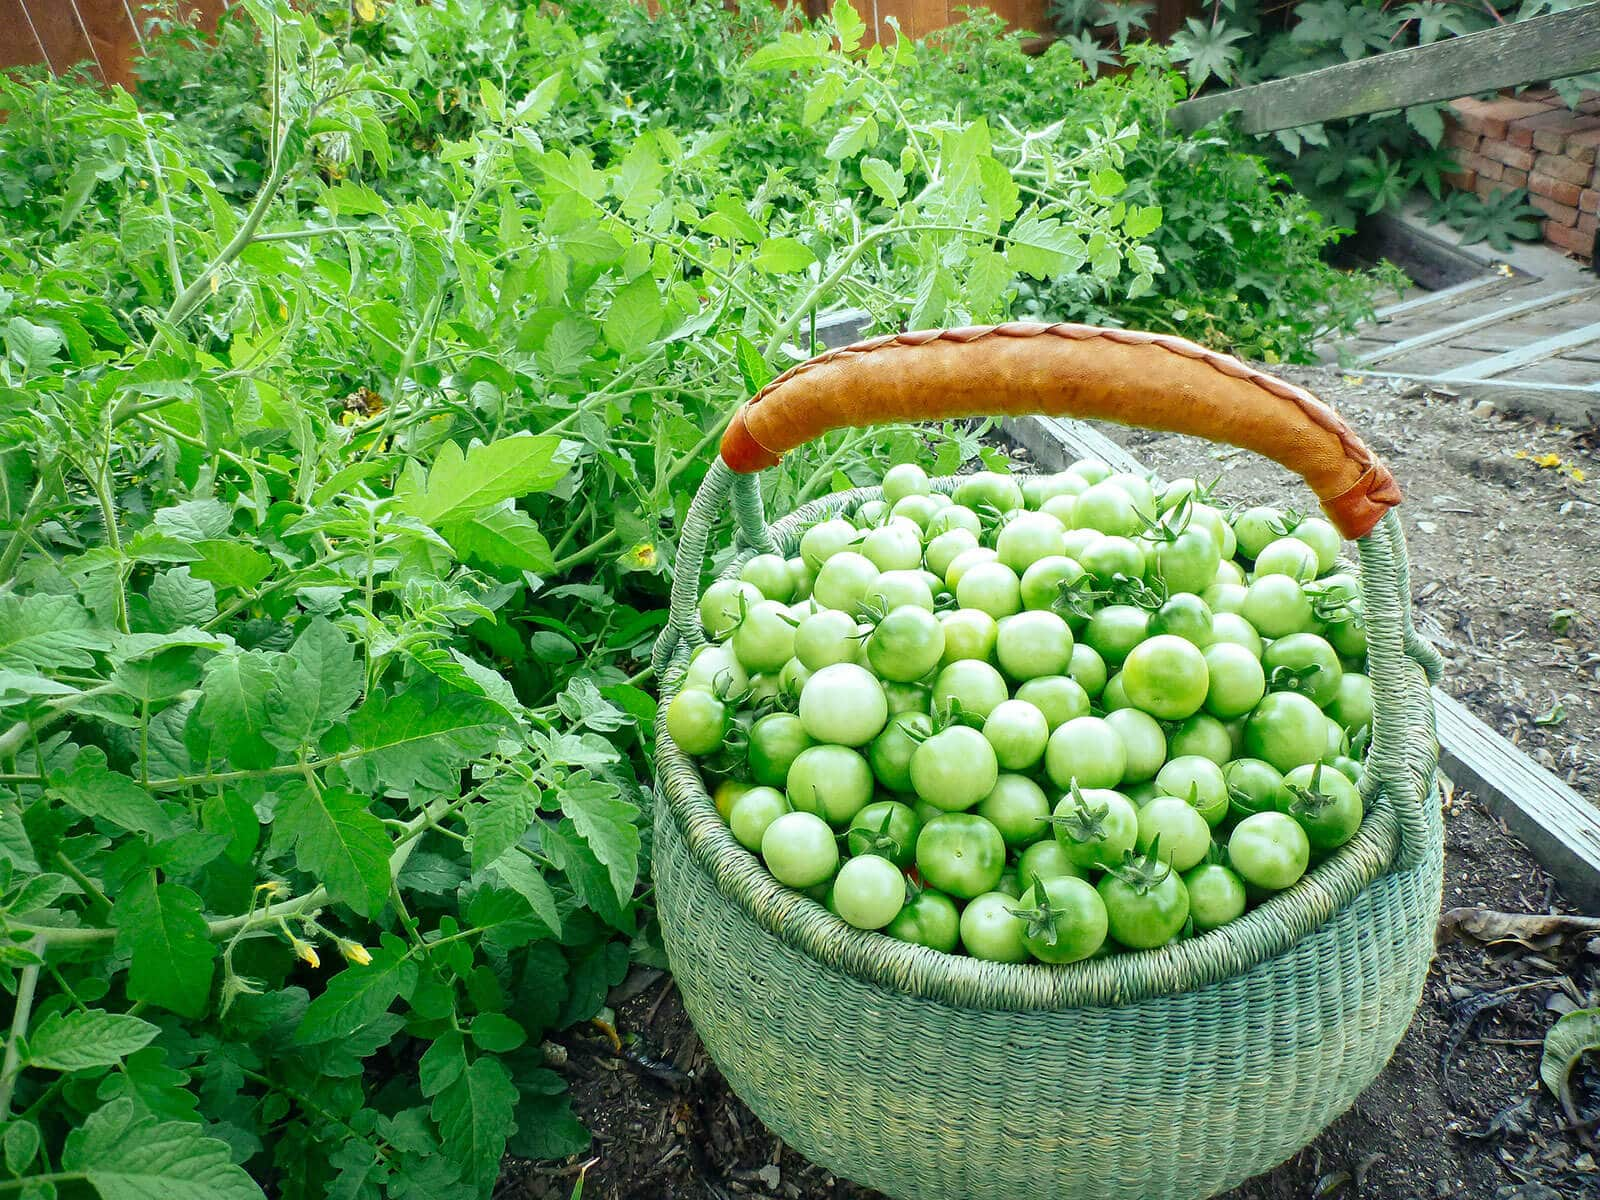 Basket of green cherry tomatoes harvested from the garden